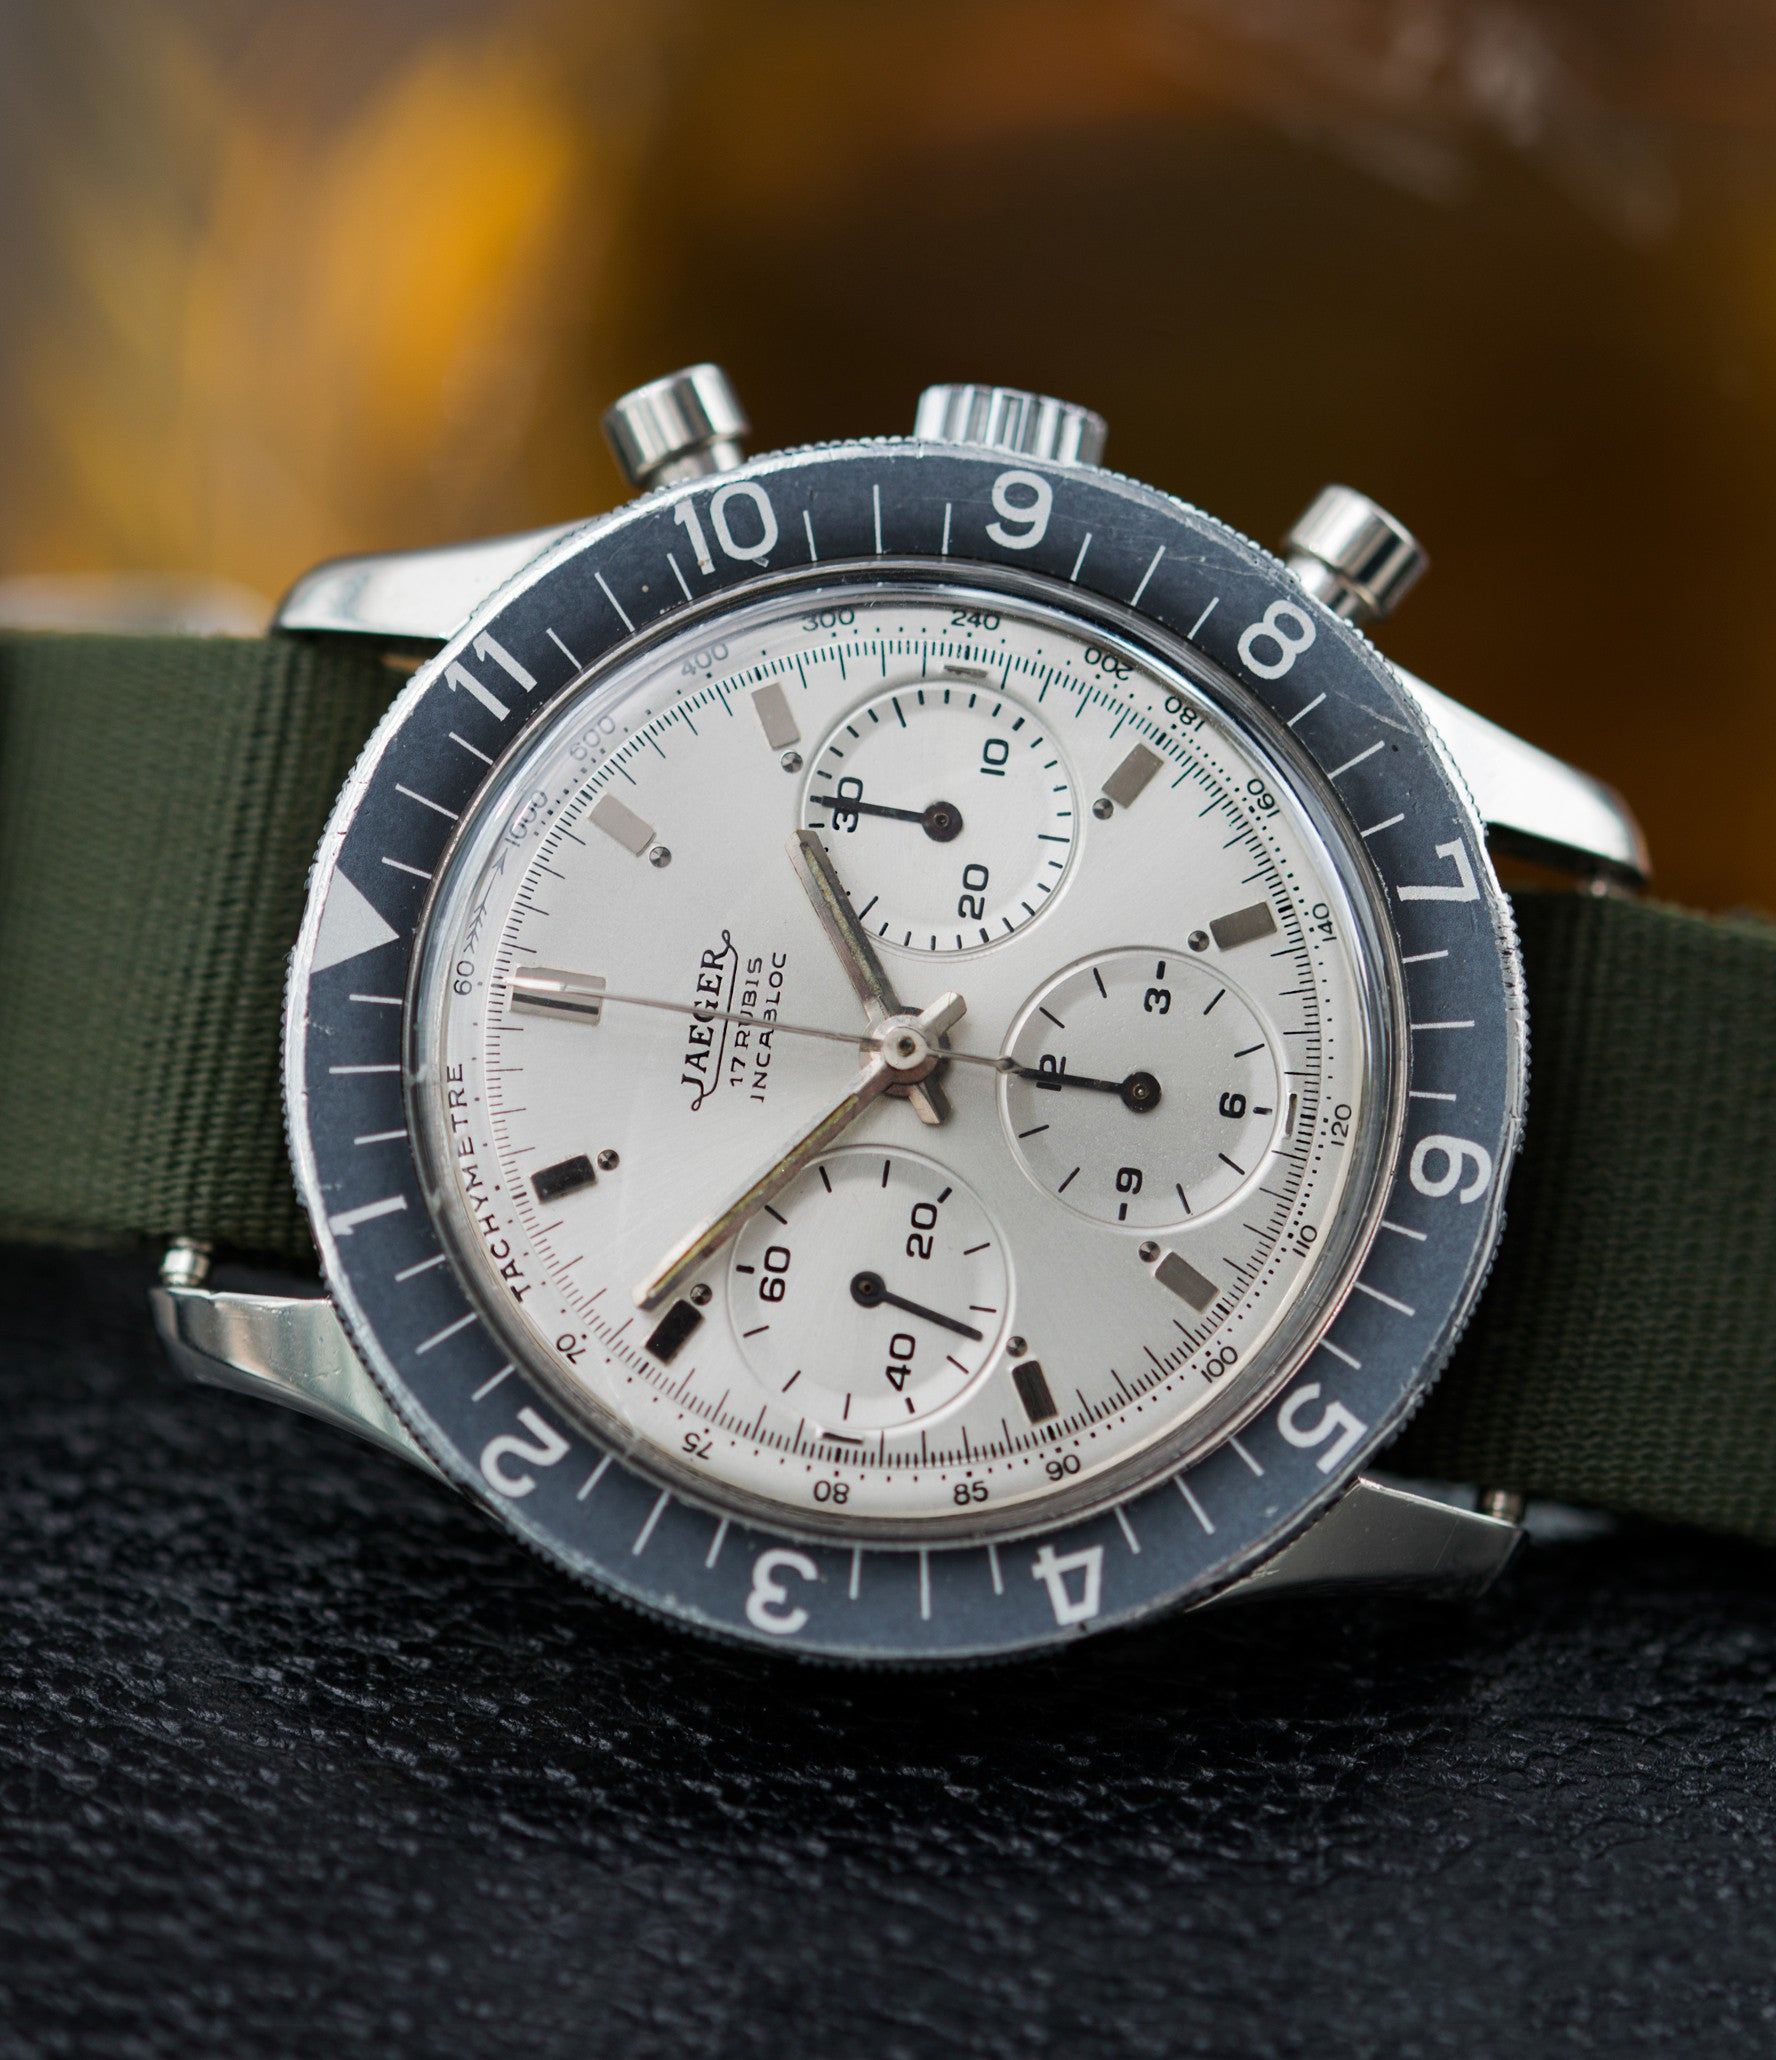 vintage sport watch Jaeger-LeCoultre 4ATM E. 13001 steel chronograph watch online at A Collected Man London seller rare vintage watches